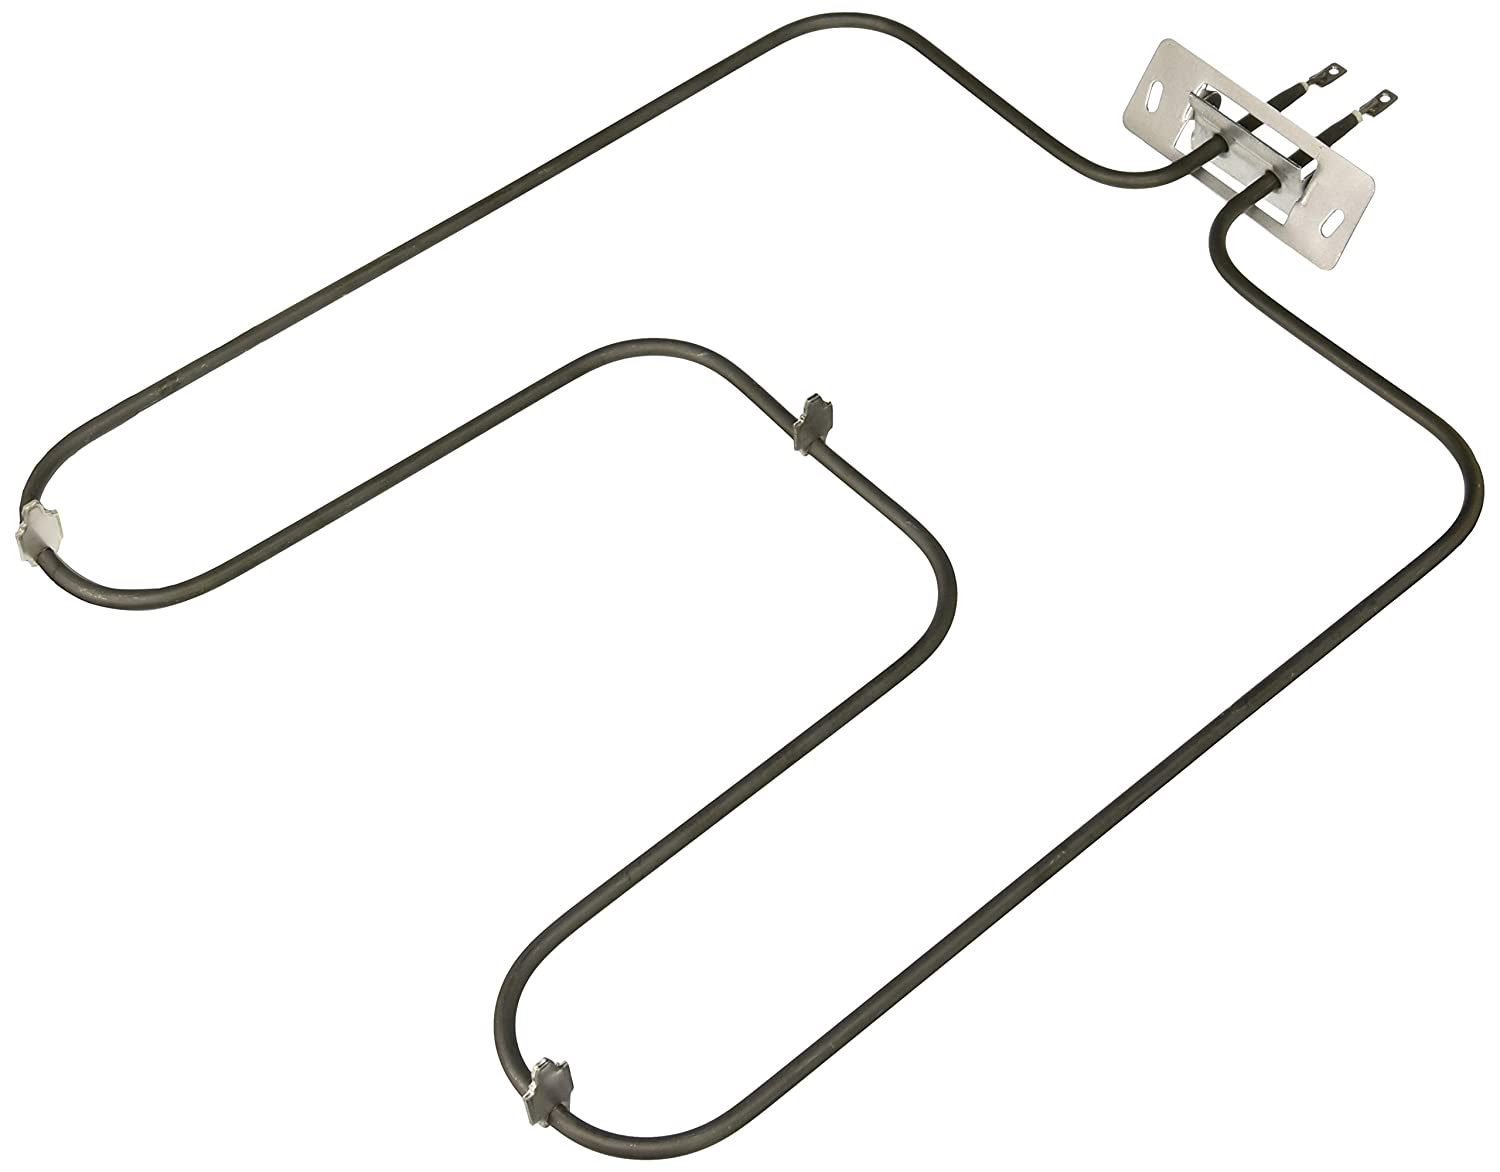 GE APPLIANCE PARTS WB44X200 Bake Element for GE, Hotpoint, and RCA Wall Ovens